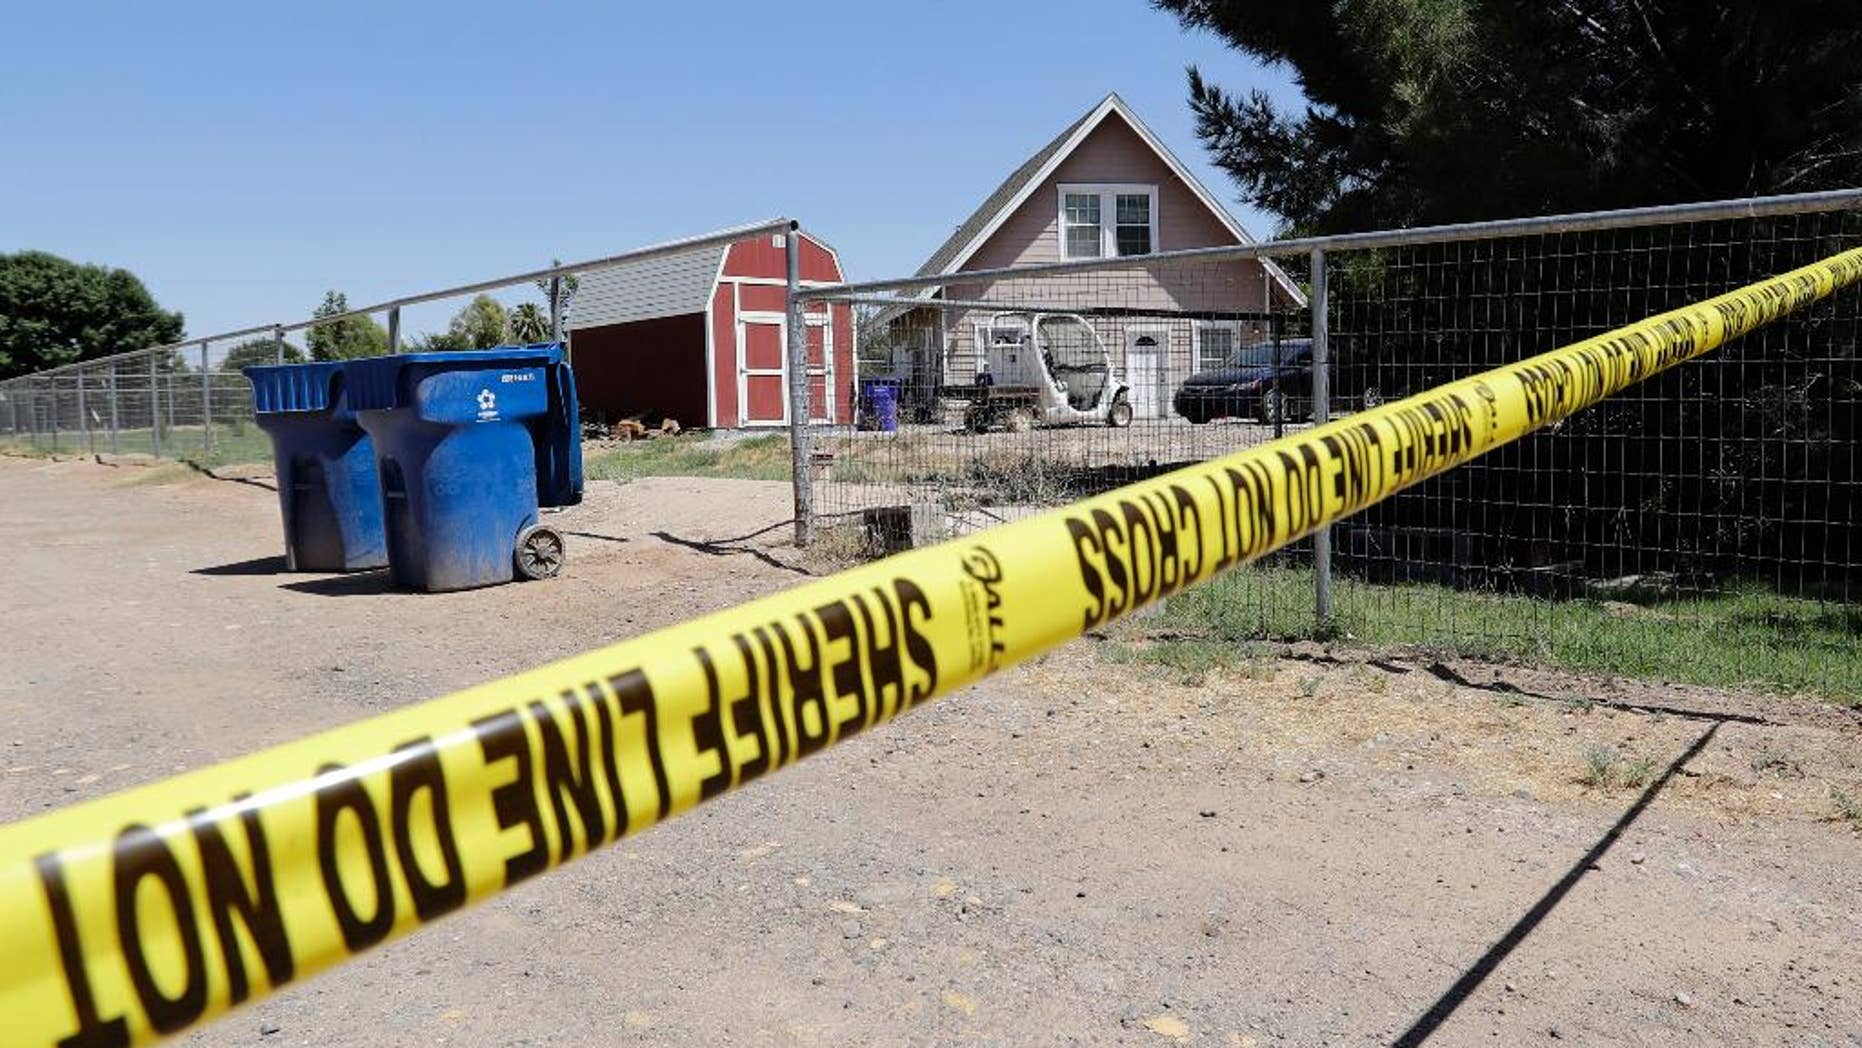 Crime scene tape blocks the entrance to a home where multiple bodies were found, Tuesday, July 26, 2016, in Gilbert, Ariz. Sheriff's officials say multiple dead bodies have been found inside a home in an unincorporated area of Gilbert, east of Phoenix. There's no immediate word Tuesday on how many bodies or their ages or genders. (AP Photo/Matt York)